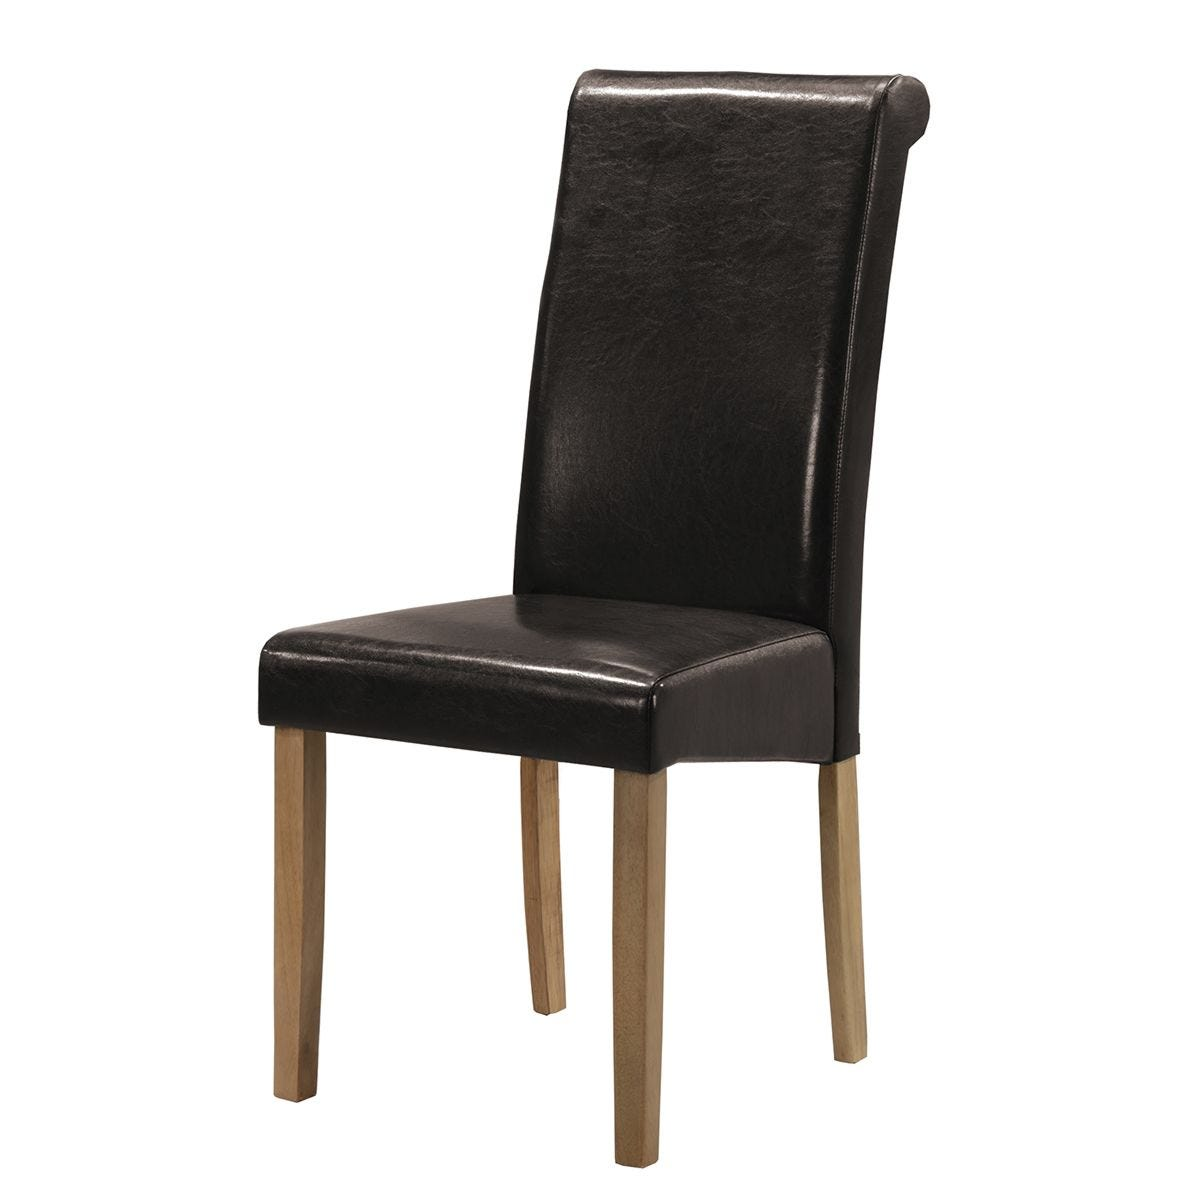 Set Of 2 Marley Solid Rubberwood Chairs With Faux Leather Seats - Brown